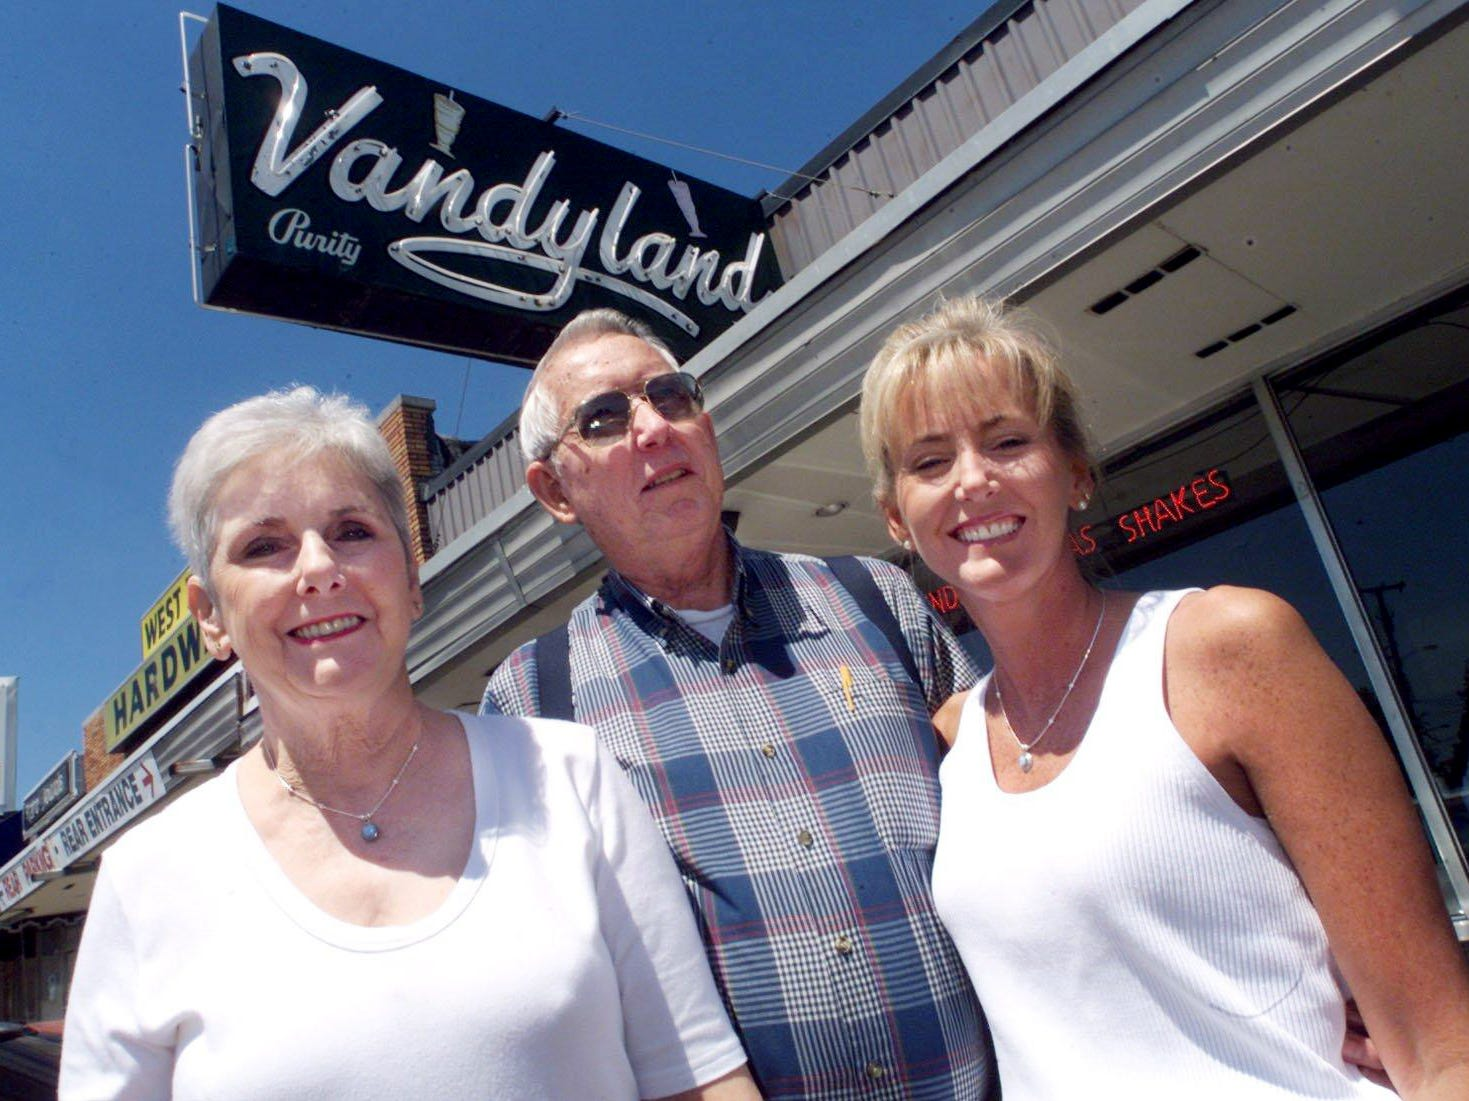 Vandyland owners Bea and Mitchell Givens and their daughter Malinda Abell stand outside the Vandyland store off West End May 14, 2002.